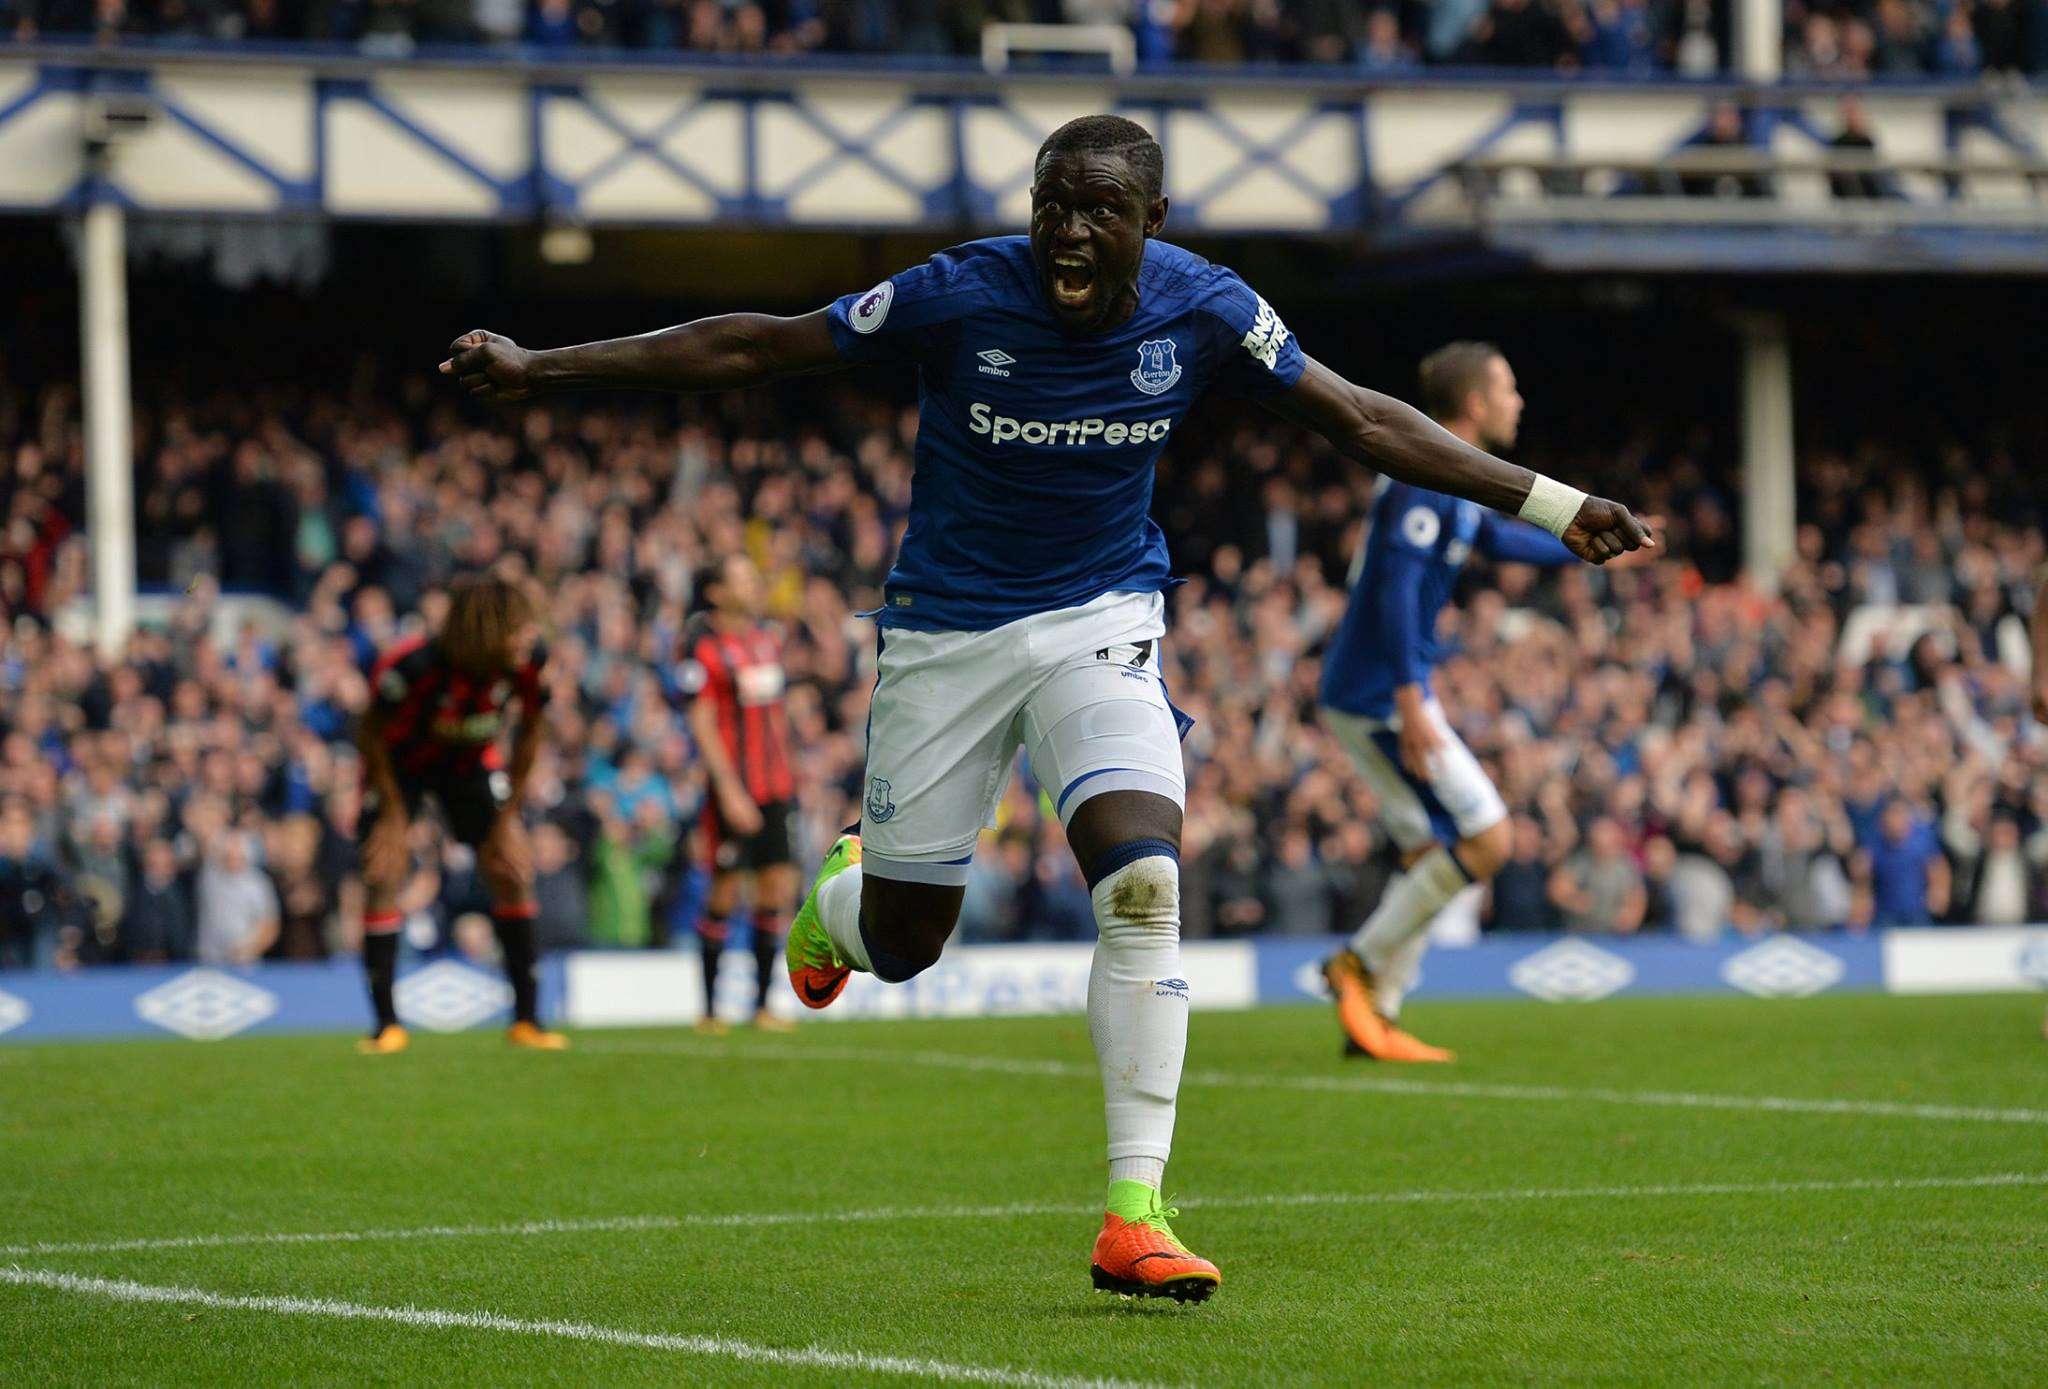 Oumar Niasse celebrates after scoring for Everton. (Getty Images)